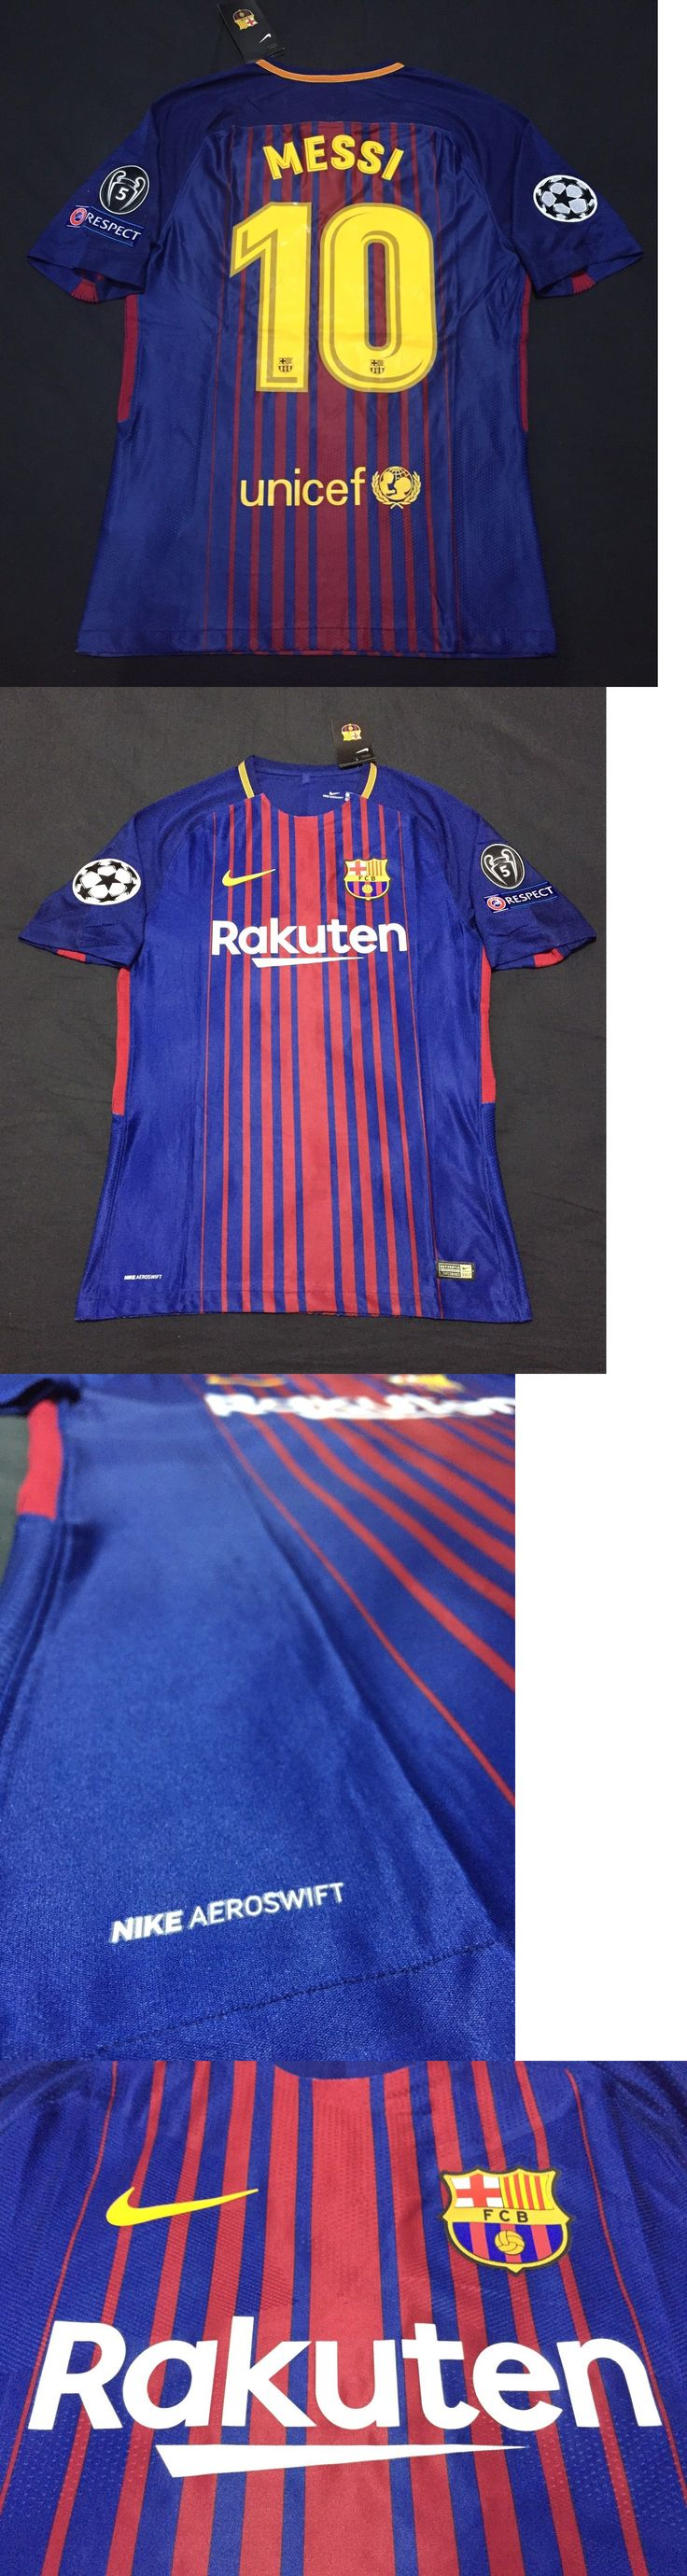 Soccer-International Clubs 2887: Fc Barcelona Jersey 2017 18 Messi #10 Vapor Match Aeroswift Player Version Small -> BUY IT NOW ONLY: $93.99 on eBay!